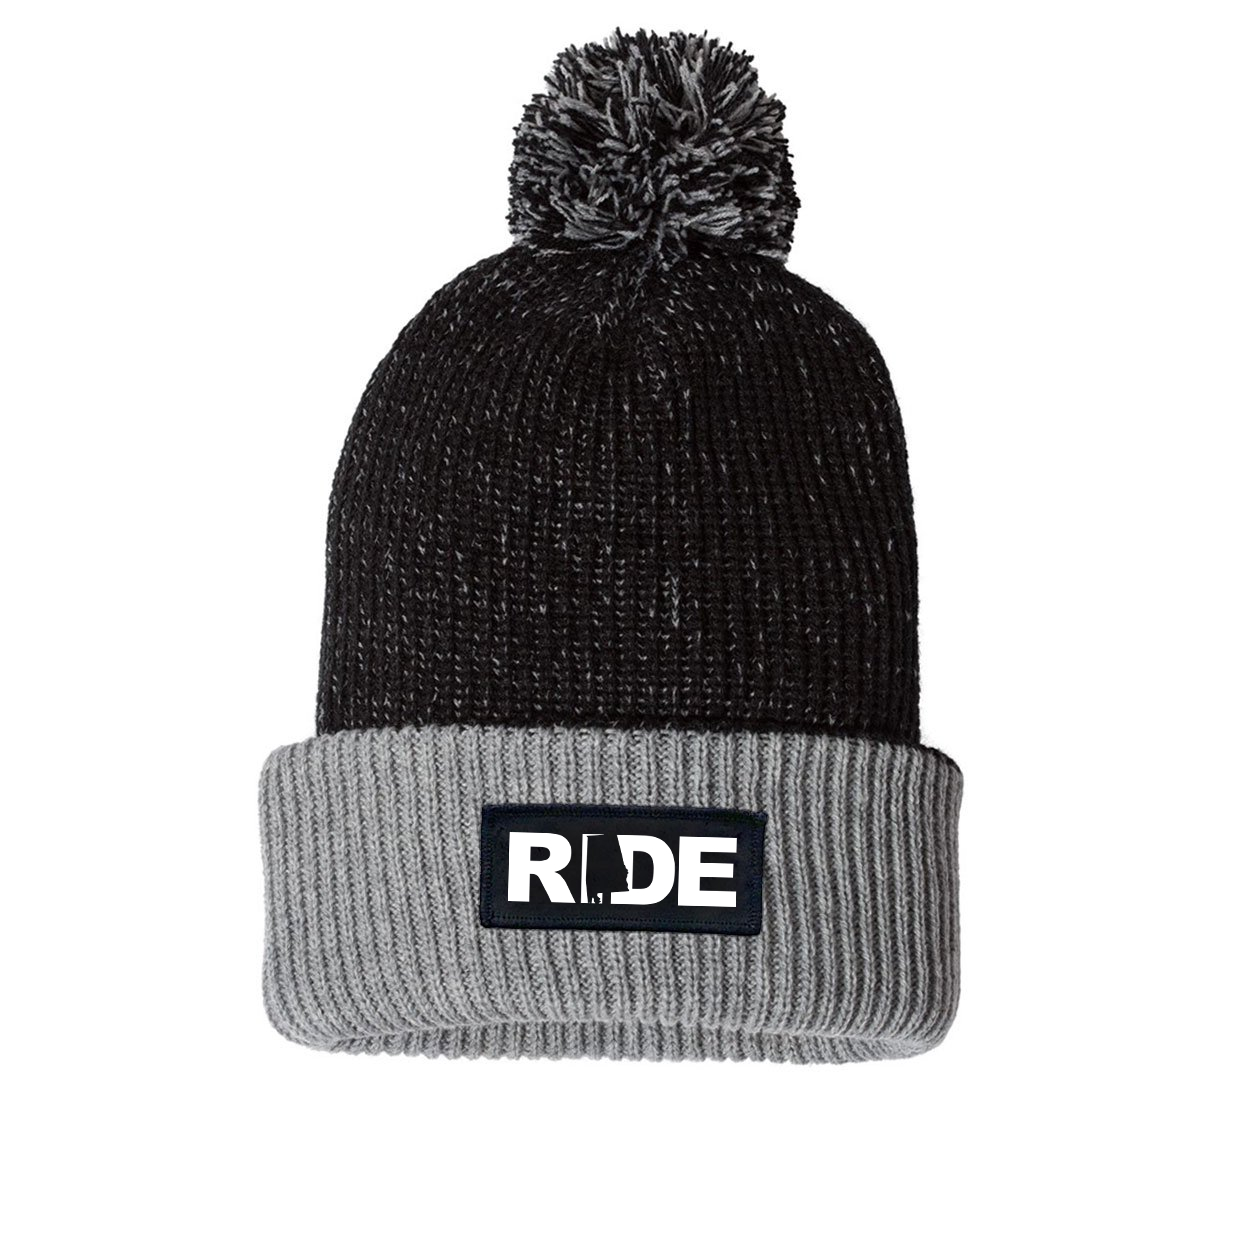 Ride Alabama Night Out Woven Patch Roll Up Pom Knit Beanie Black/Gray (White Logo)